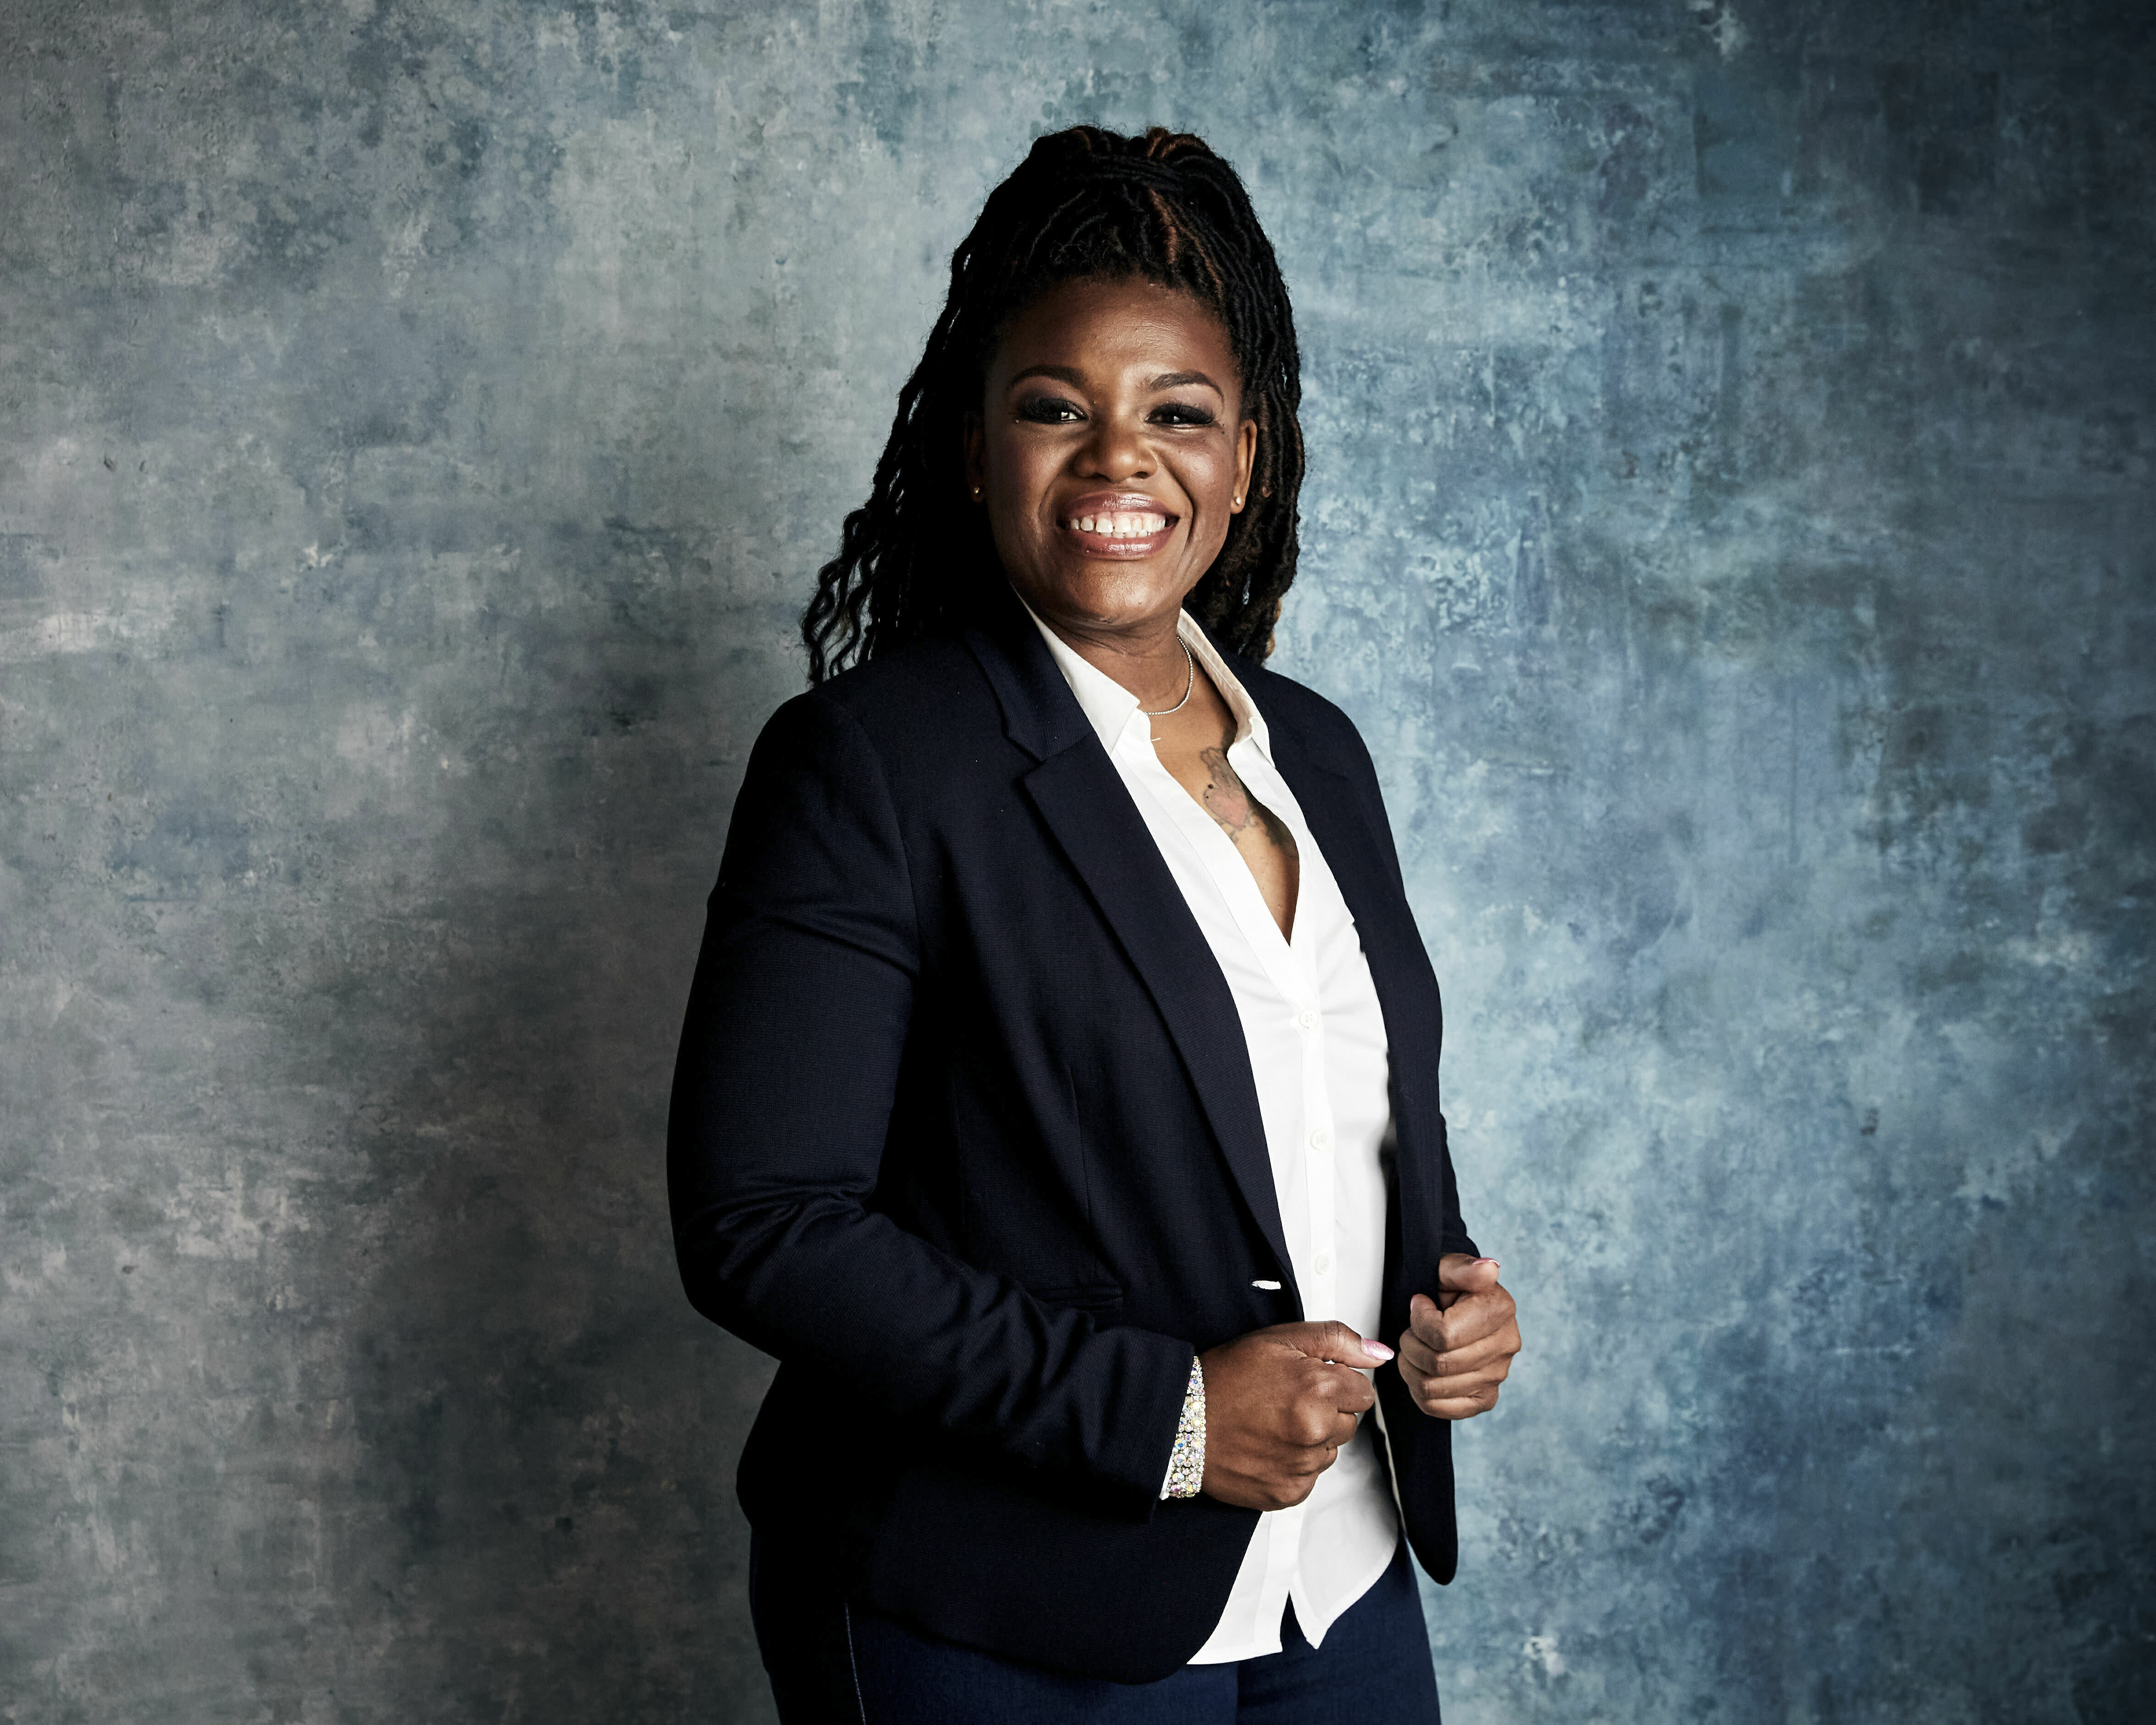 """FILE - In this Jan. 27, 2019, file photo Cori Bush poses for a portrait to promote the film """"Knock Down the House"""" at the Salesforce Music Lodge during the Sundance Film Festival in Park City, Utah. Bush, a onetime homeless woman who led protests following a white police officer's fatal shooting of a Black 18-year-old in Ferguson, Mo., ousted longtime Rep. William Lacy Clay Tuesday in Missouri's Democratic primary, ending a political dynasty that has spanned more than a half-century. Bush's victory came in a rematch of 2018, when she failed to capitalize on a national Democratic wave that favored political newcomers such as Bush's friend, Rep. Alexandria Ocasio-Cortez. (Photo by Taylor Jewell/Invision/AP, File)"""